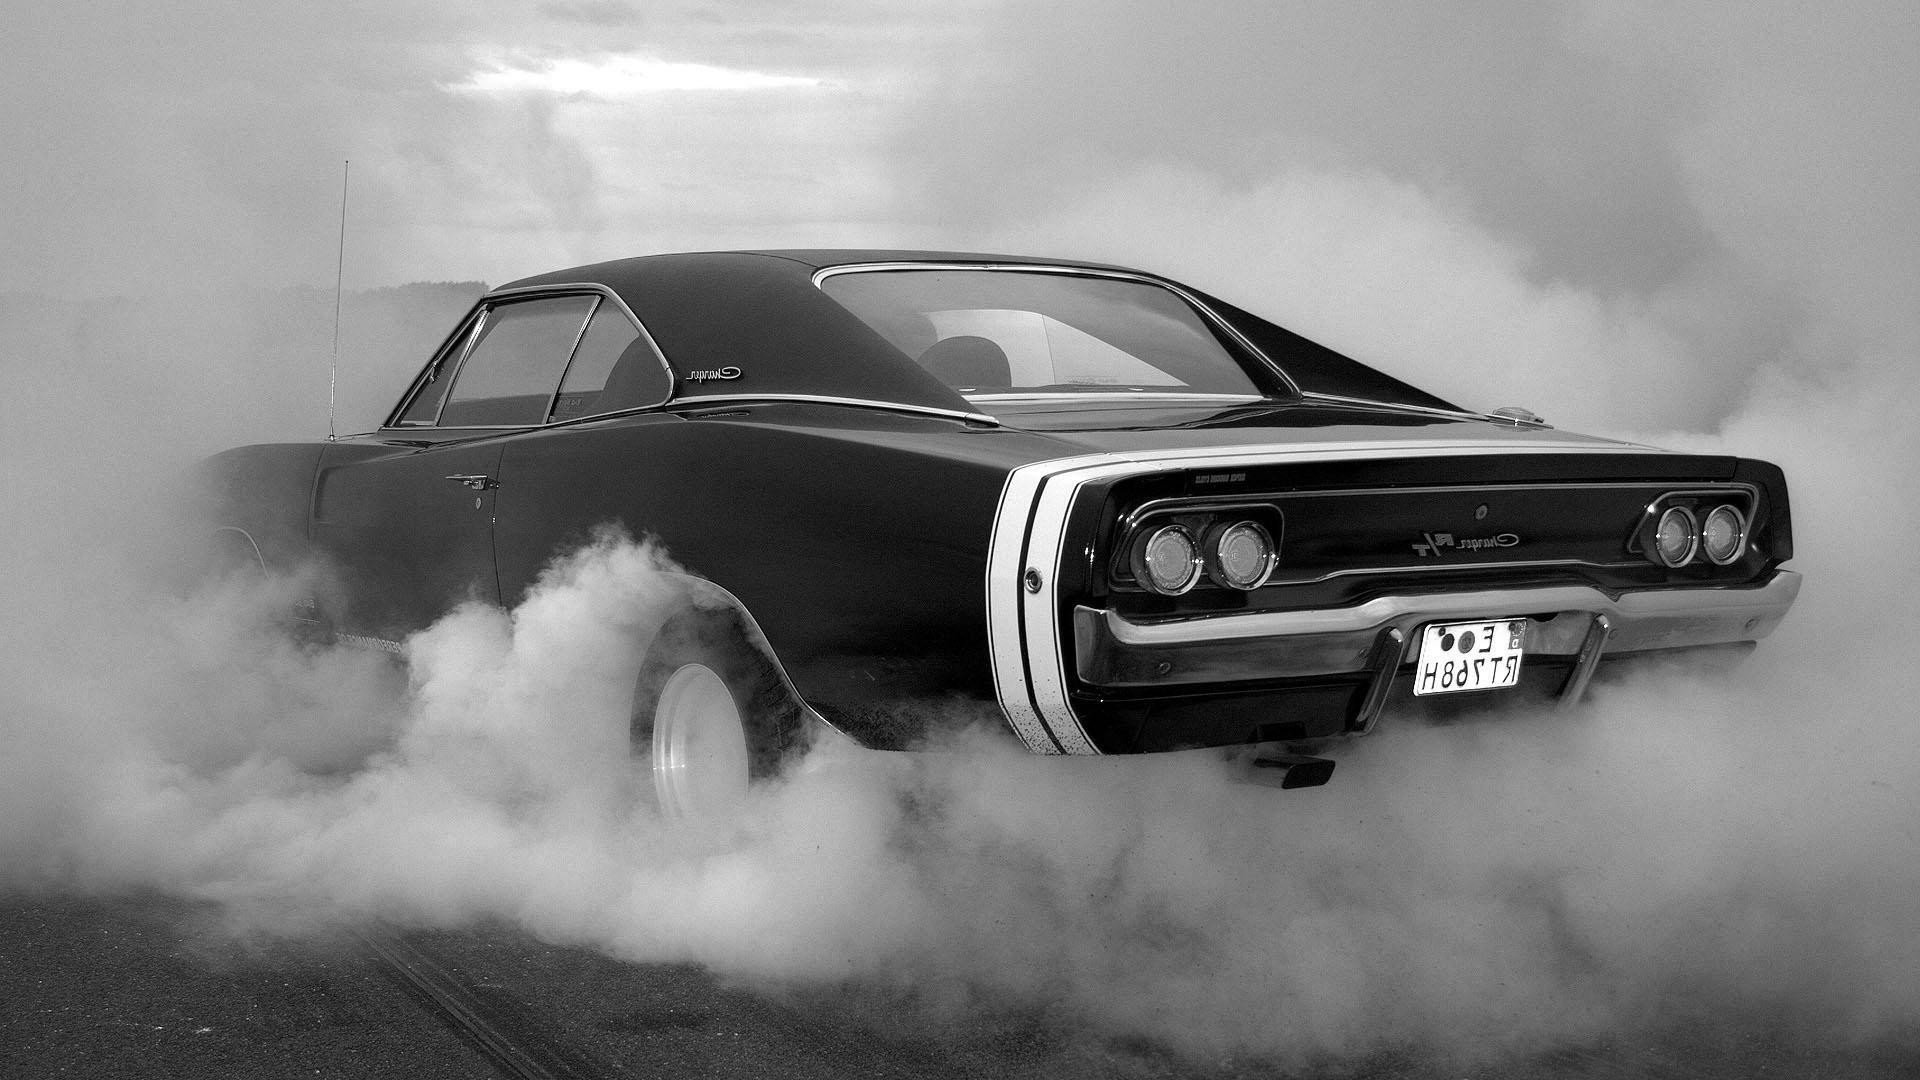 American Muscle Car HD Wallpaper